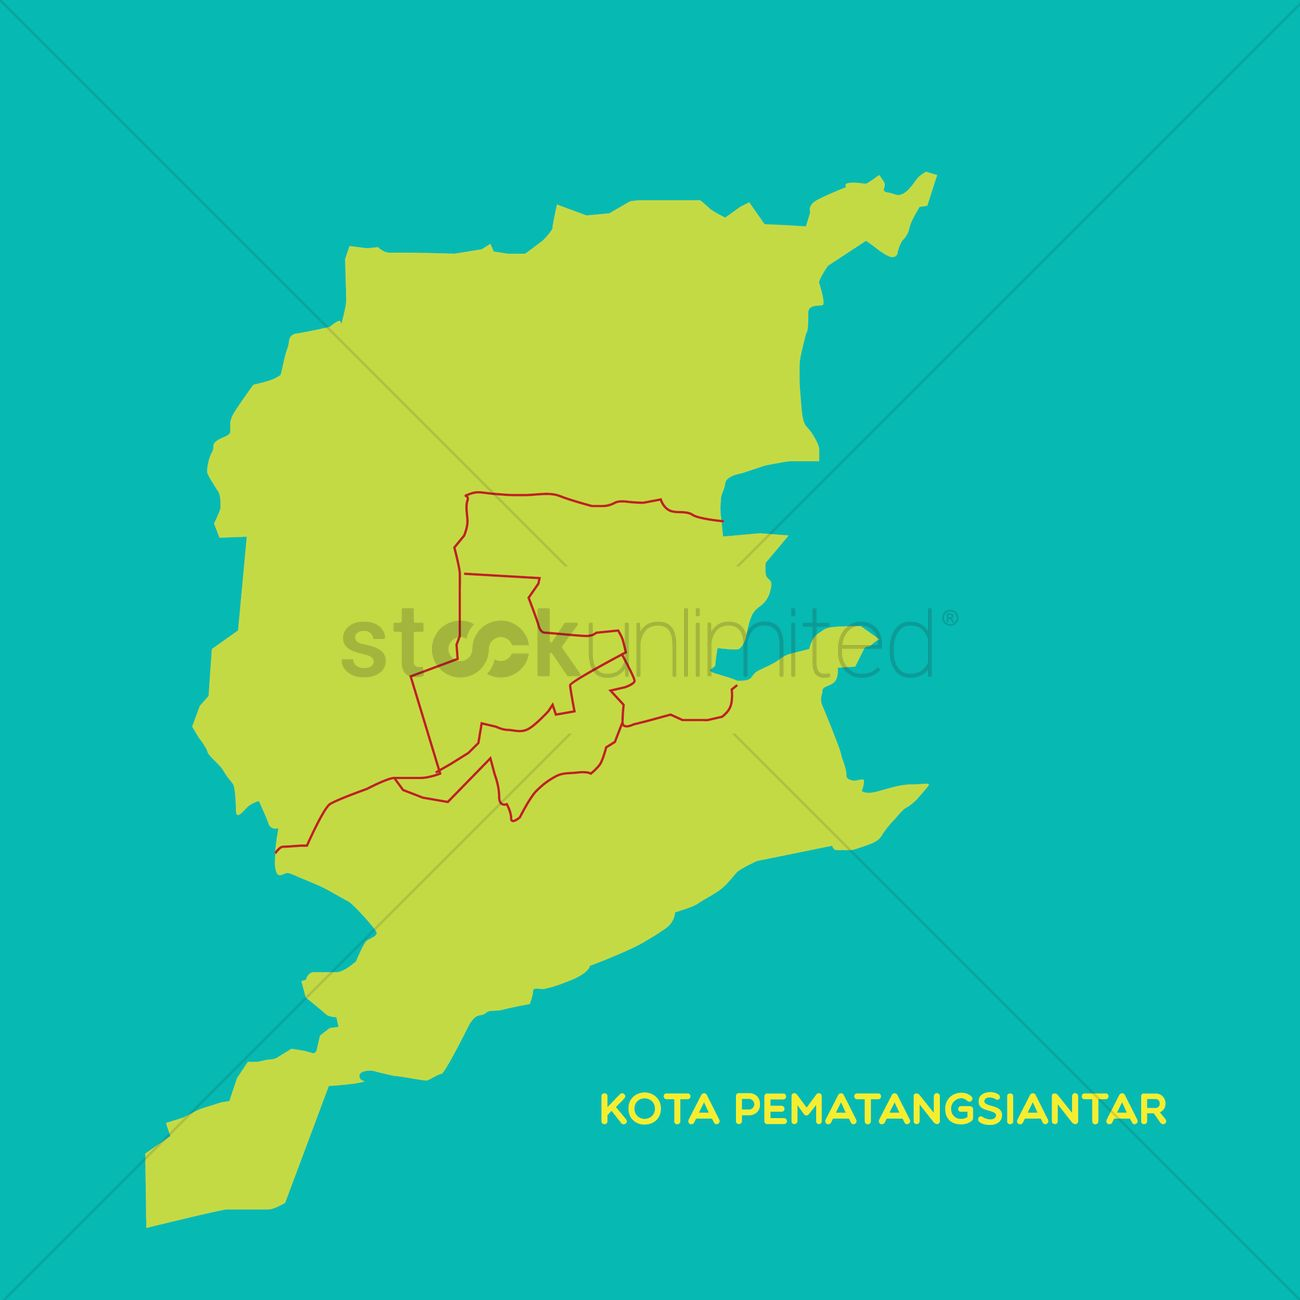 Map Of Kota Pematangsiantar Vector Image 1480212 Stockunlimited